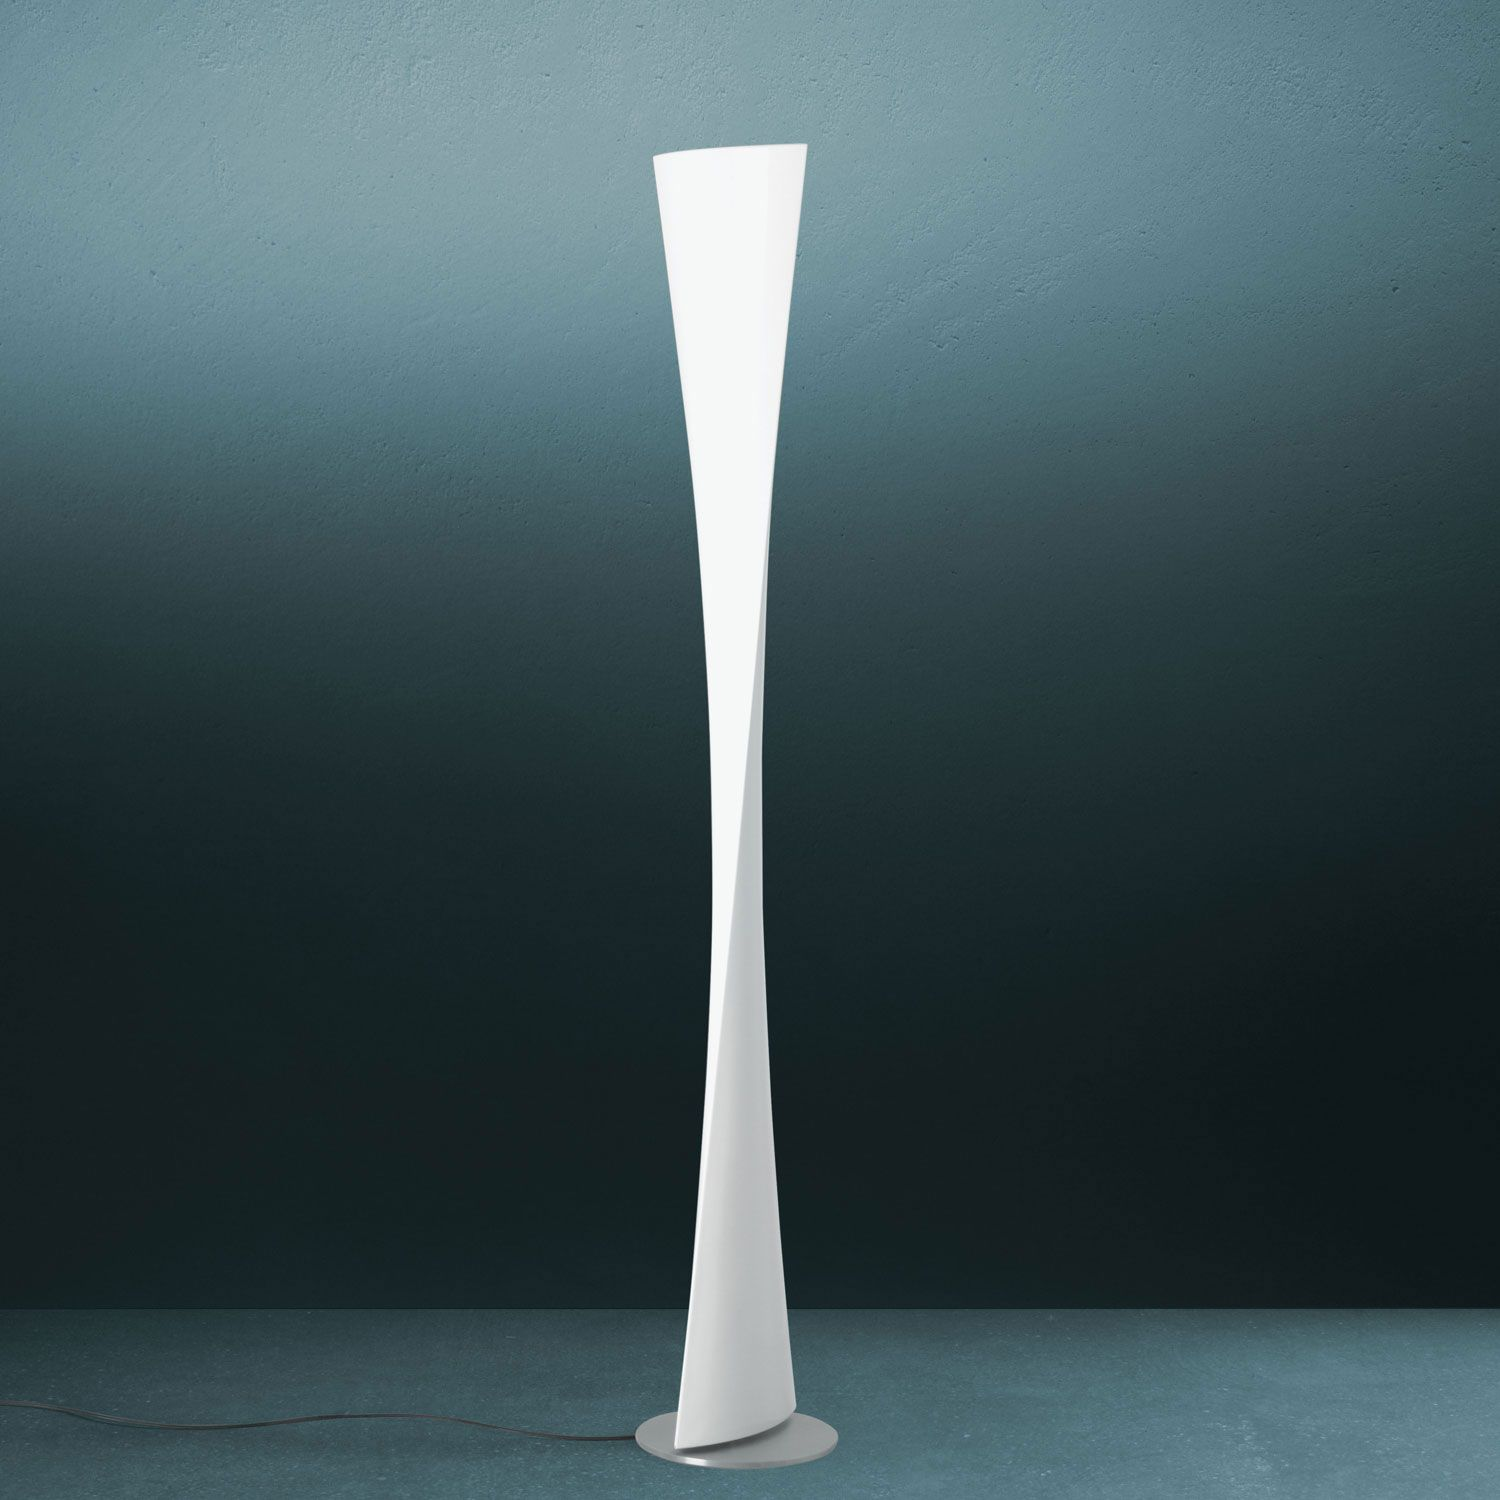 Polaris Floor Lamp By Fontana Arte U3829bi Lamp Floor Lamp Element Lighting